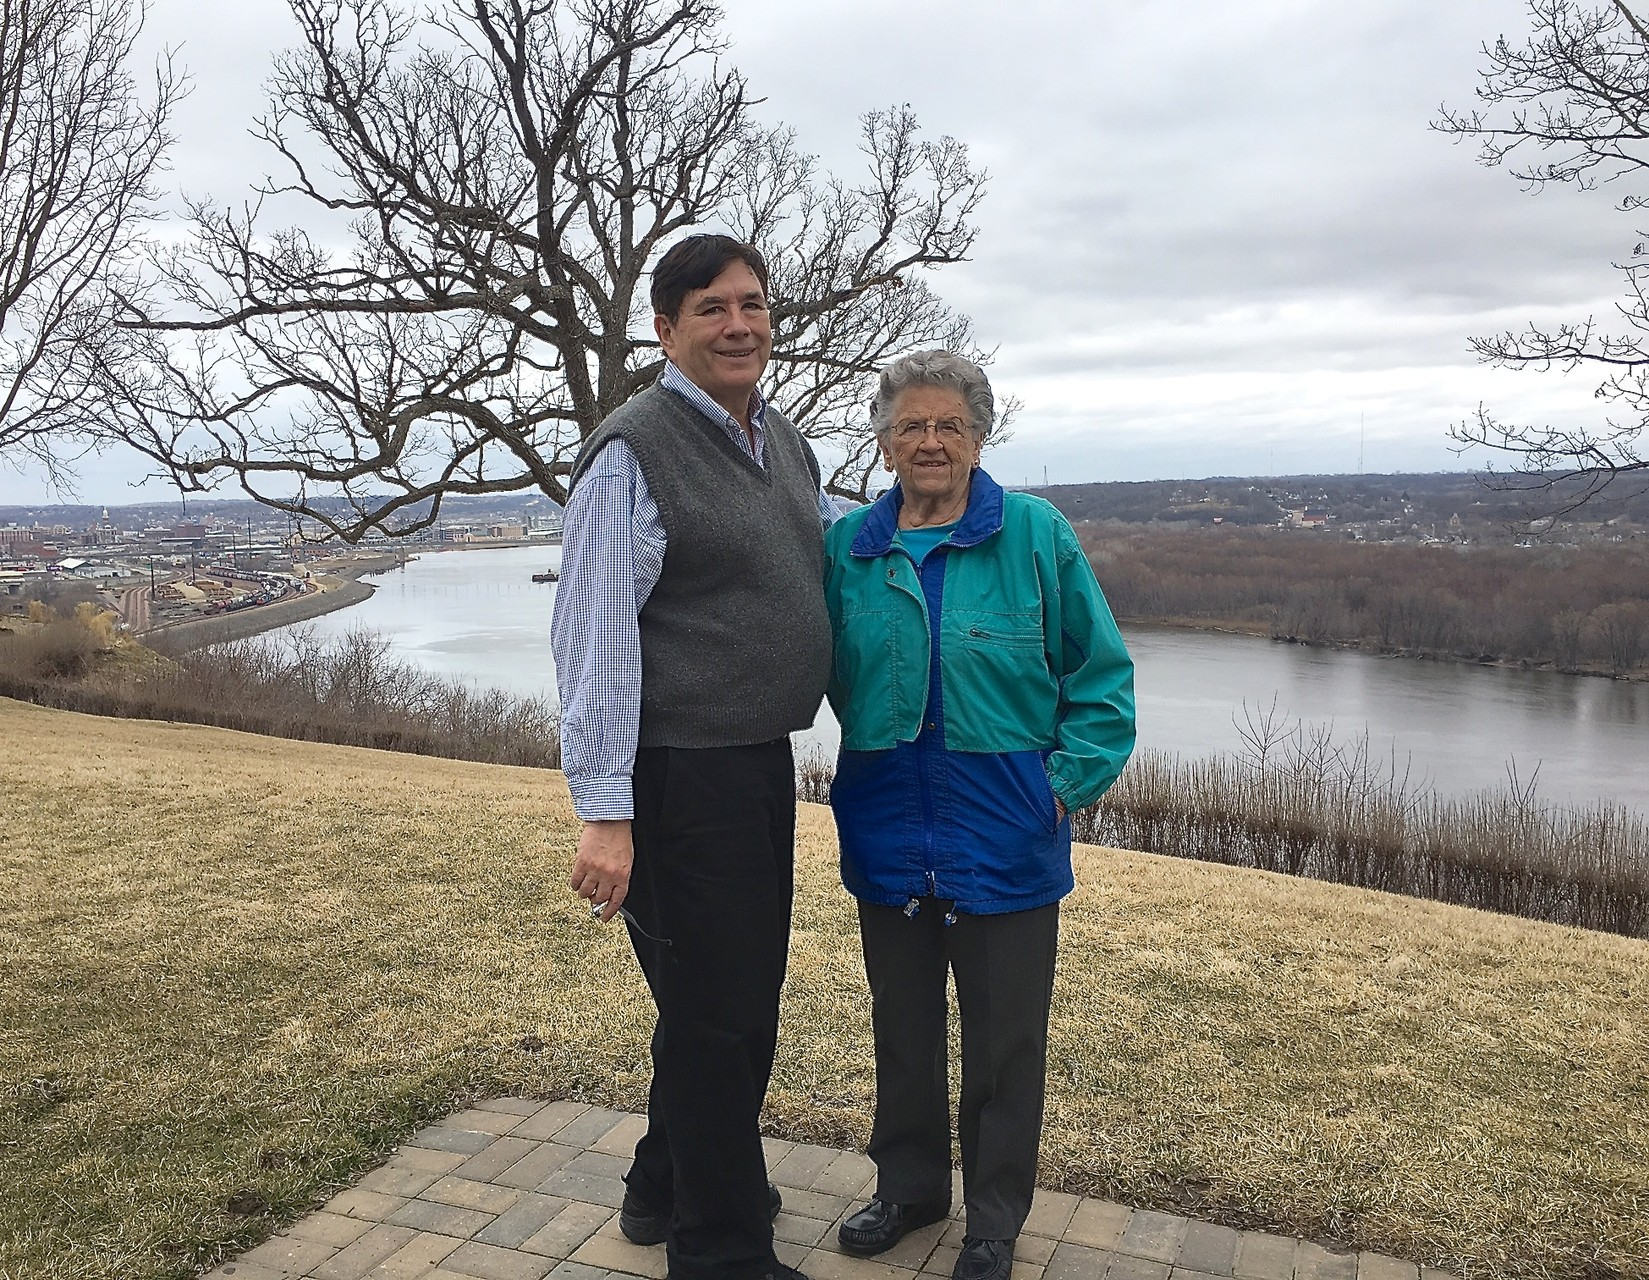 John & Mary Lou Wagner with the Mississippi River in back